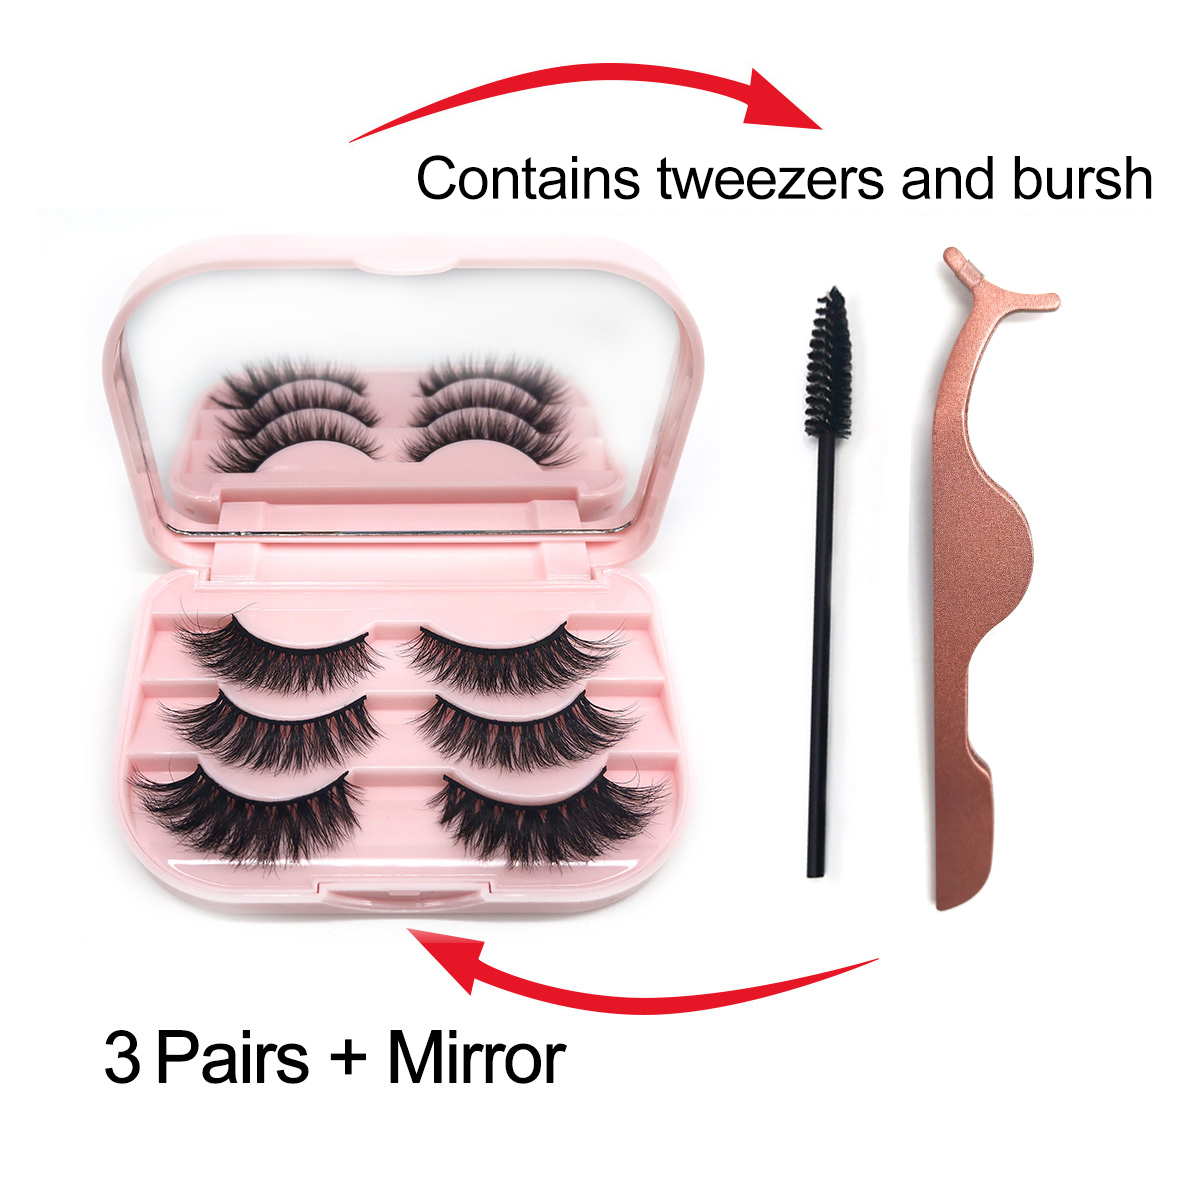 What's the lashes styles of these three 20mm mink lashes? Miami, sweatheart, doll? They are attractive and convenient. Use claim code: 20VAVFKO to get 20% off. https://t.co/N4CSnVDAMb #minklashes #3dminklashes #lashesbox #lashescase #minkeyelashes #makeup #lashes #eyelashes https://t.co/Pul7q9d4uK